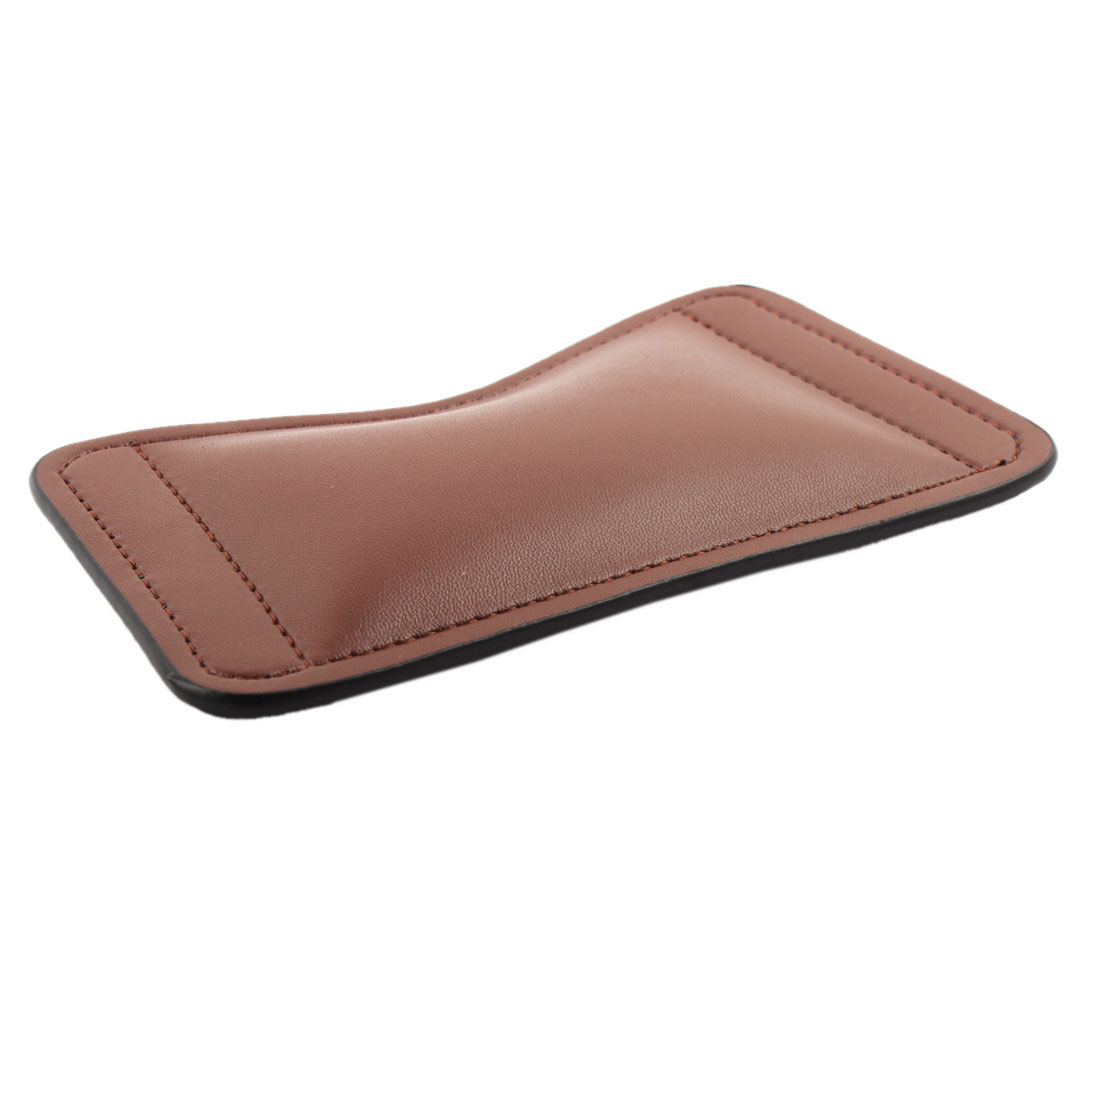 Computer PU Leather Mice Pad Hand Support Cushion Mouse Wrist Rest Brown